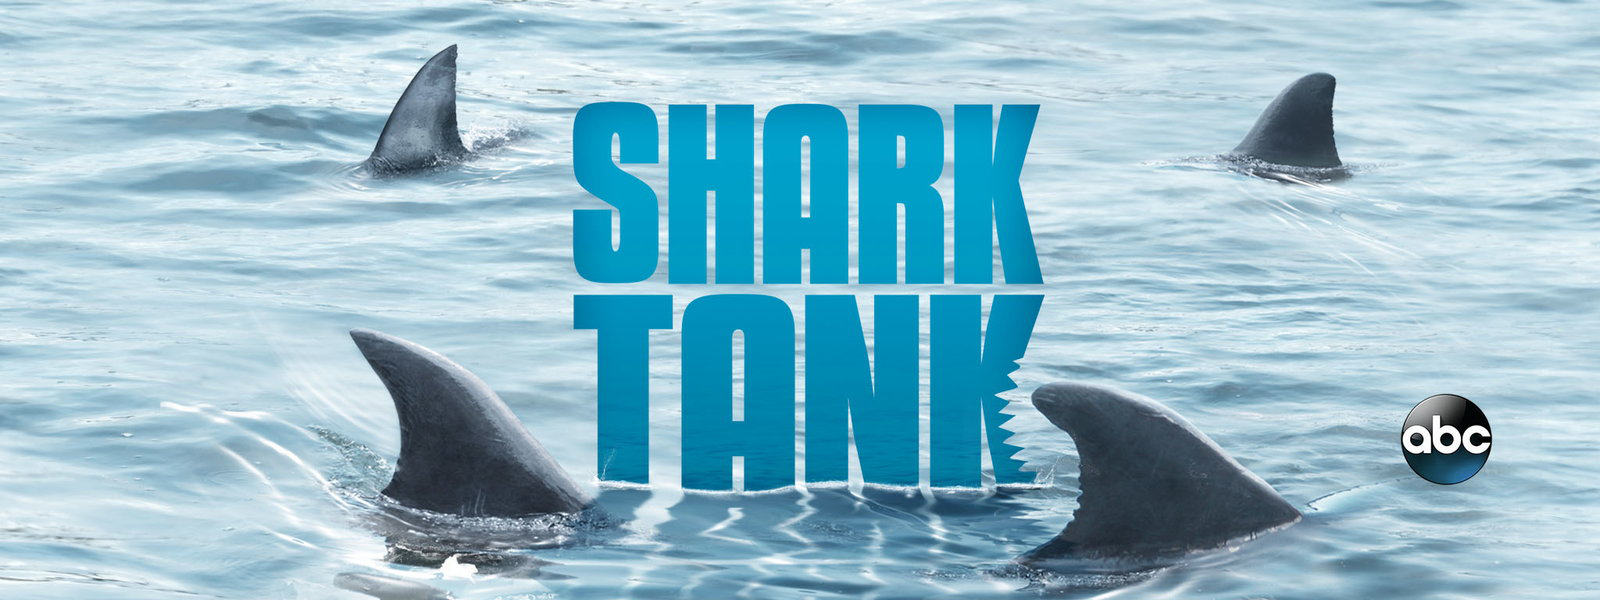 Shark Tank Tour Header